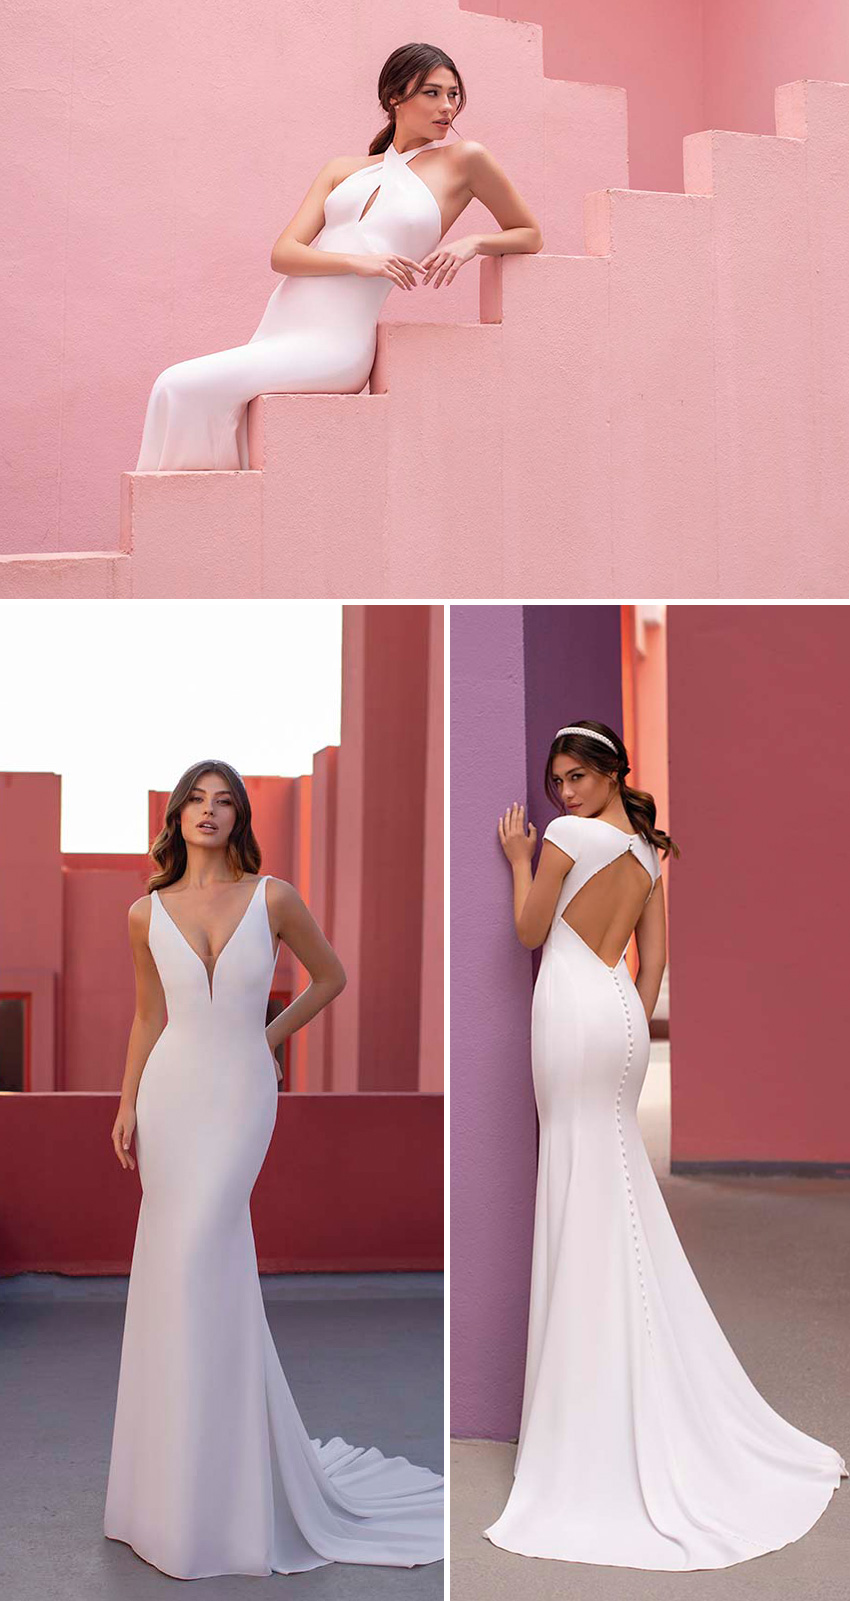 White One New bridal collection DayDream in Perfect Wedding Magazine features Minimal dresses